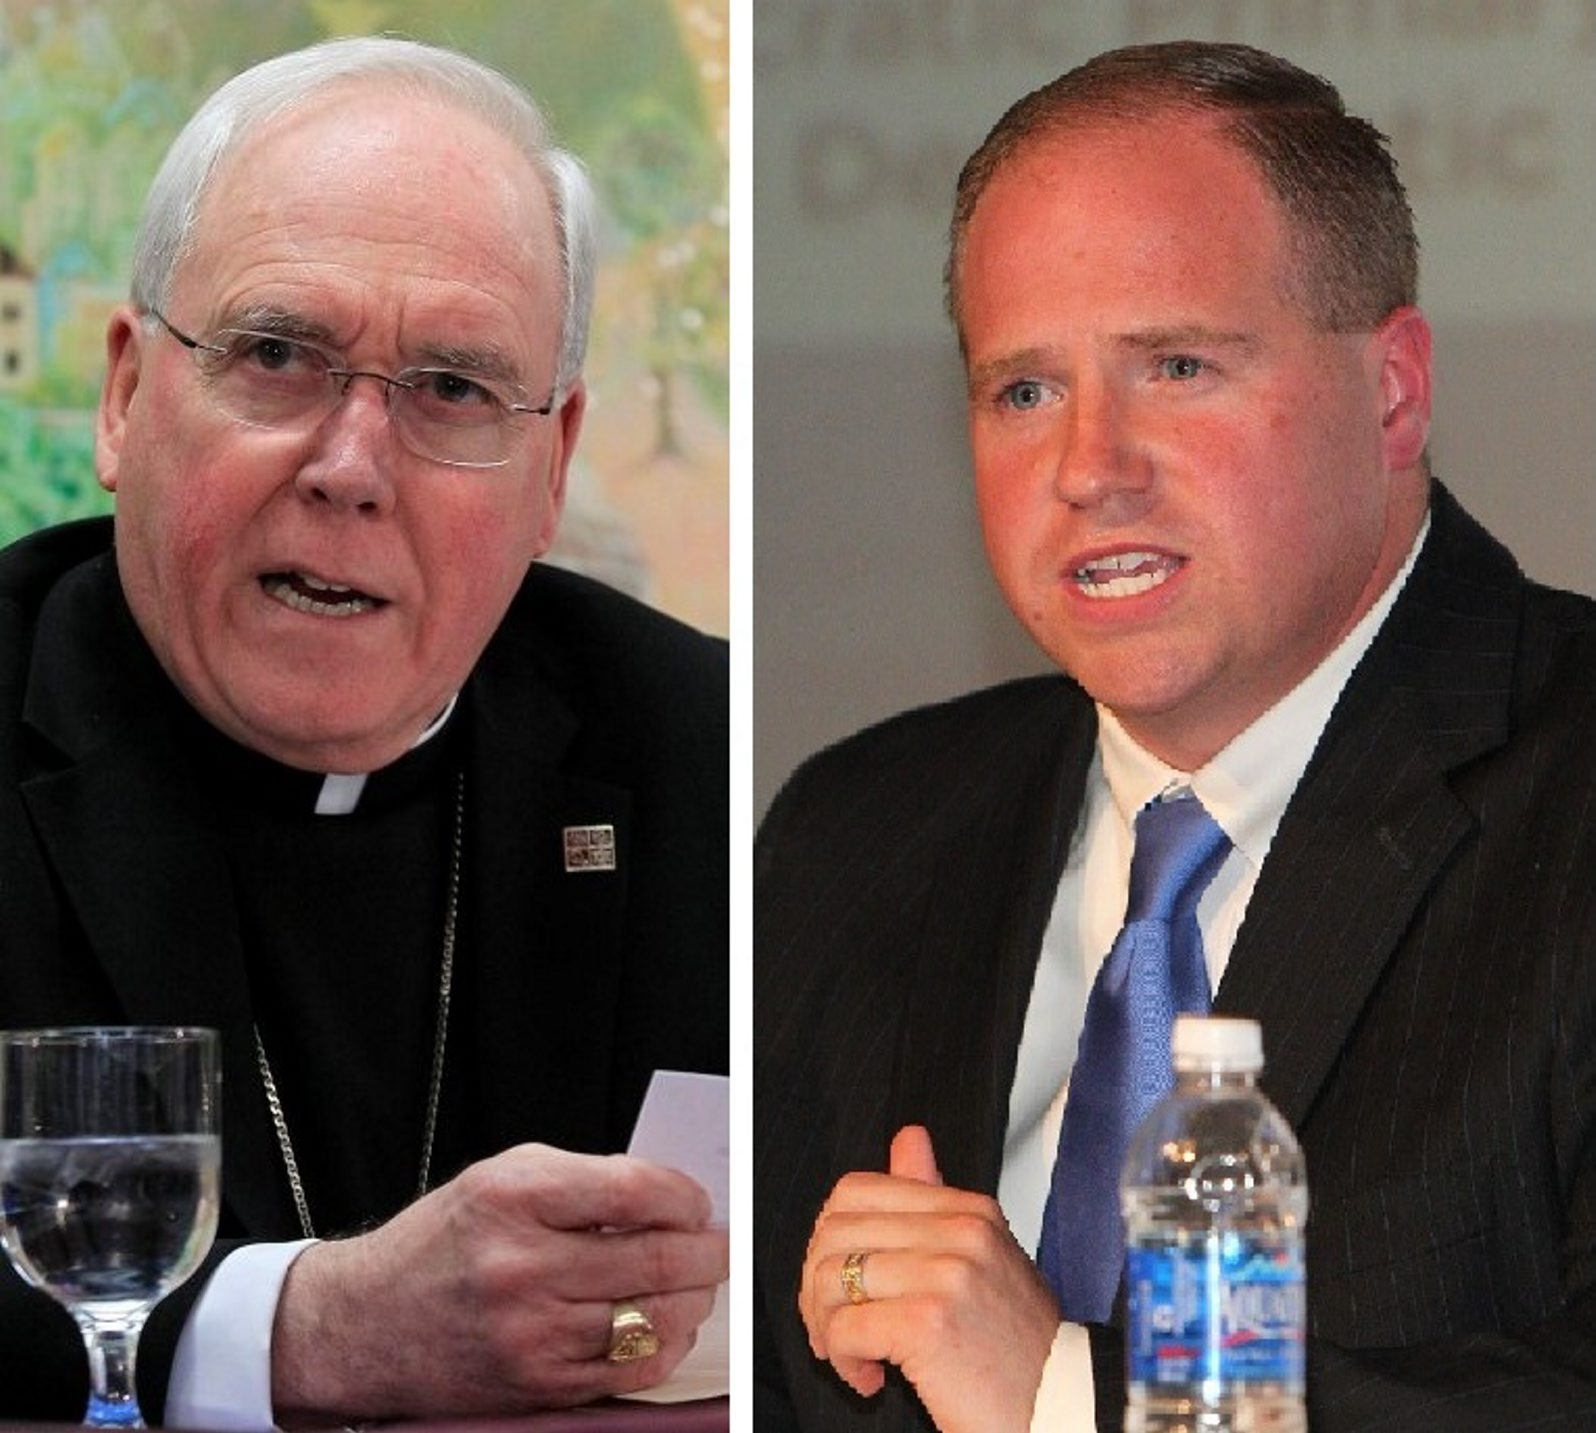 """Bishop Richard J. Malone, left, says he is """"extremely disappointed"""" that State Sen. Timothy M. Kennedy, right, has adopted a pro-choice position on abortion. (Buffalo News file photos)"""